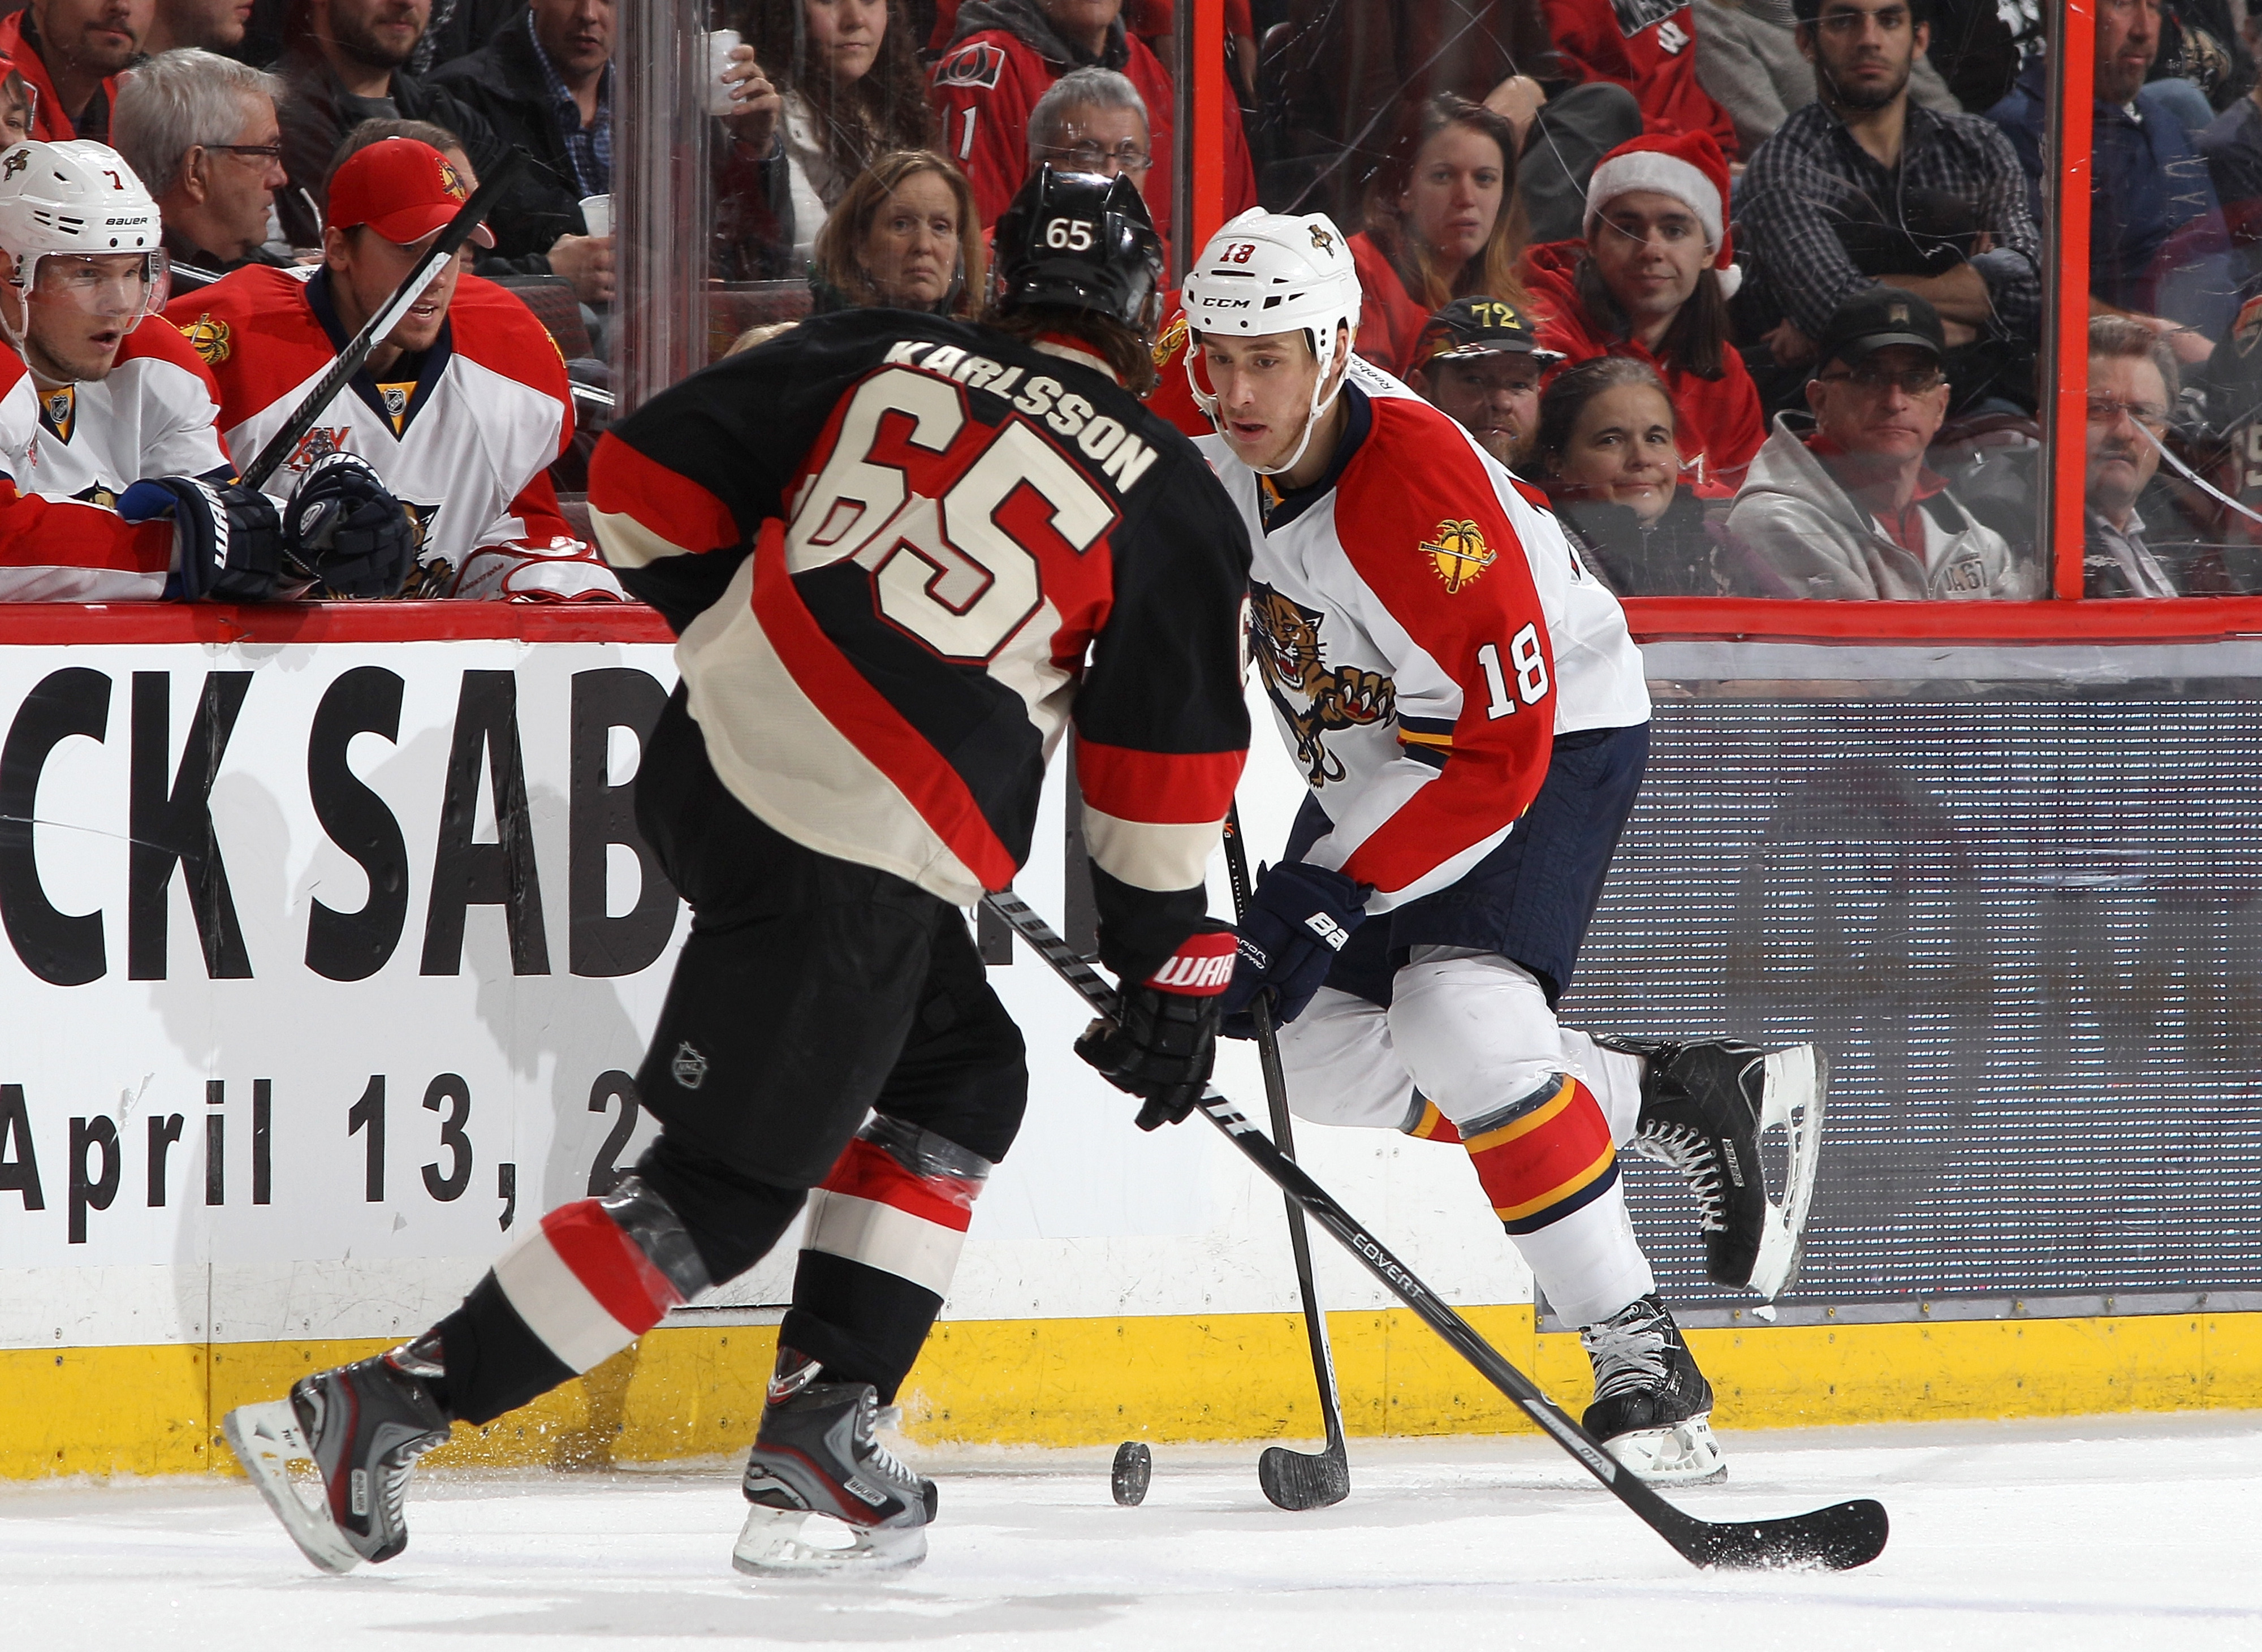 Yeah, I just look for pictures of Karlsson now.